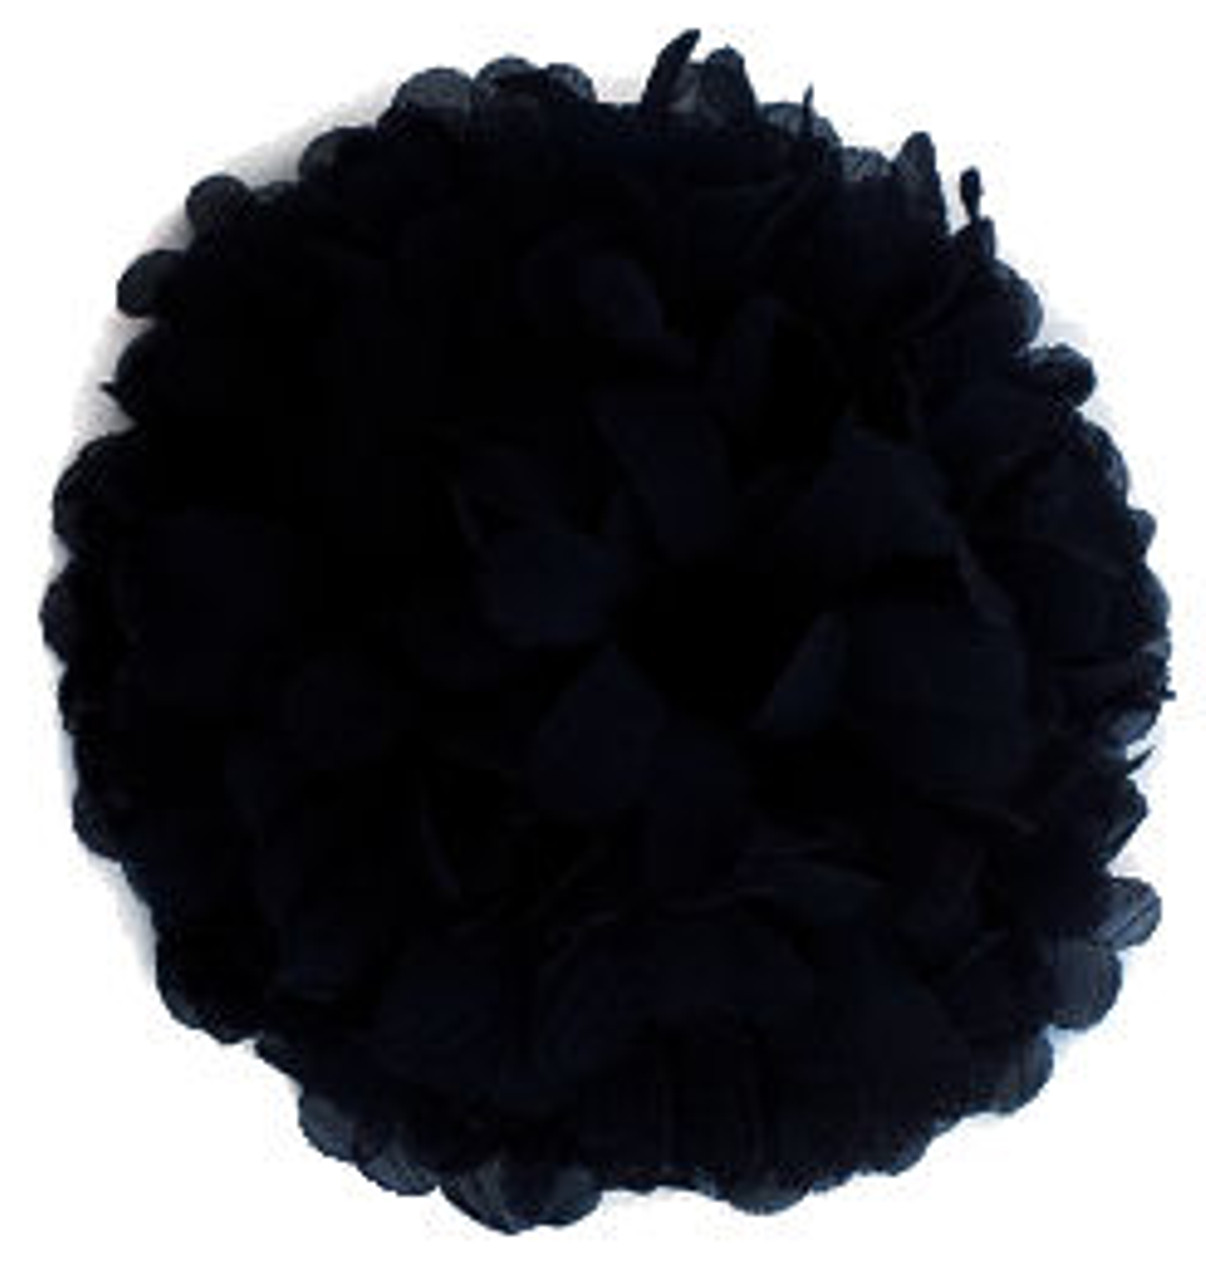 Black Chiffon Fabric Flowers